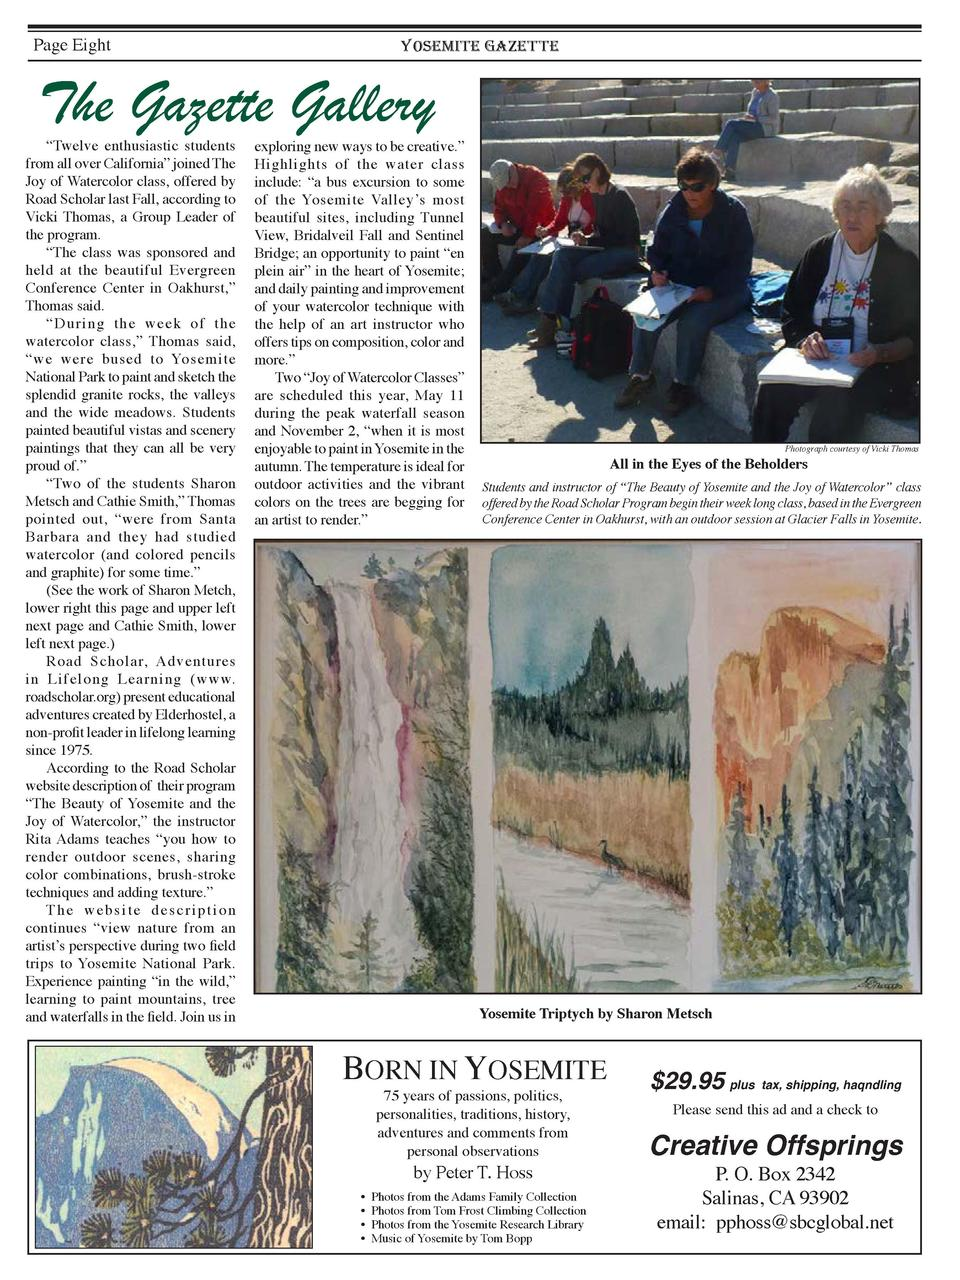 Page Eight  YOSEMITE GAZETTE  The Gazette Gallery     Twelve enthusiastic students from all over California    joined The ...